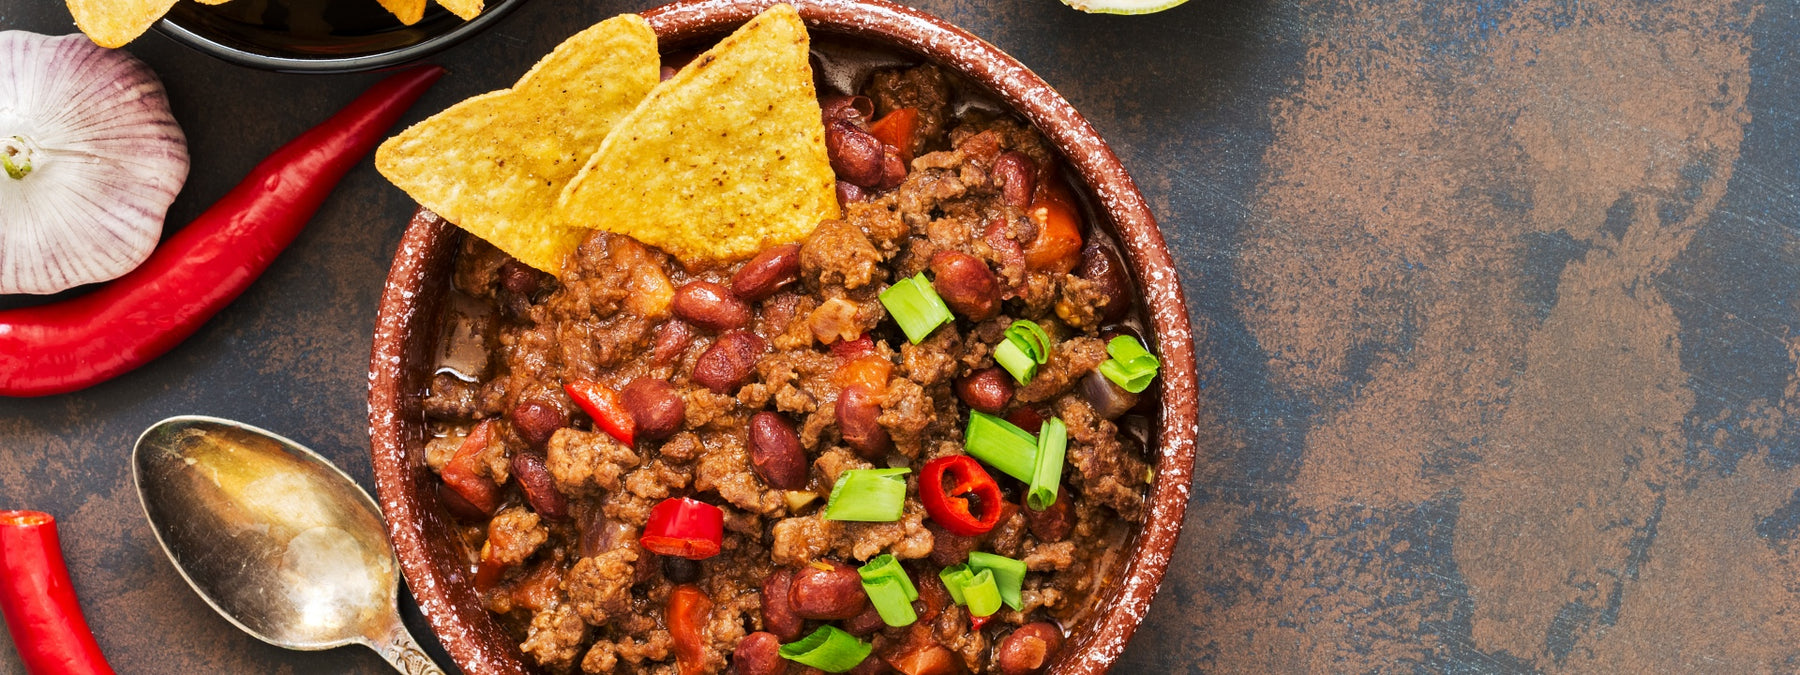 Cooking with the Squad: Muscle Building Turkey Chili